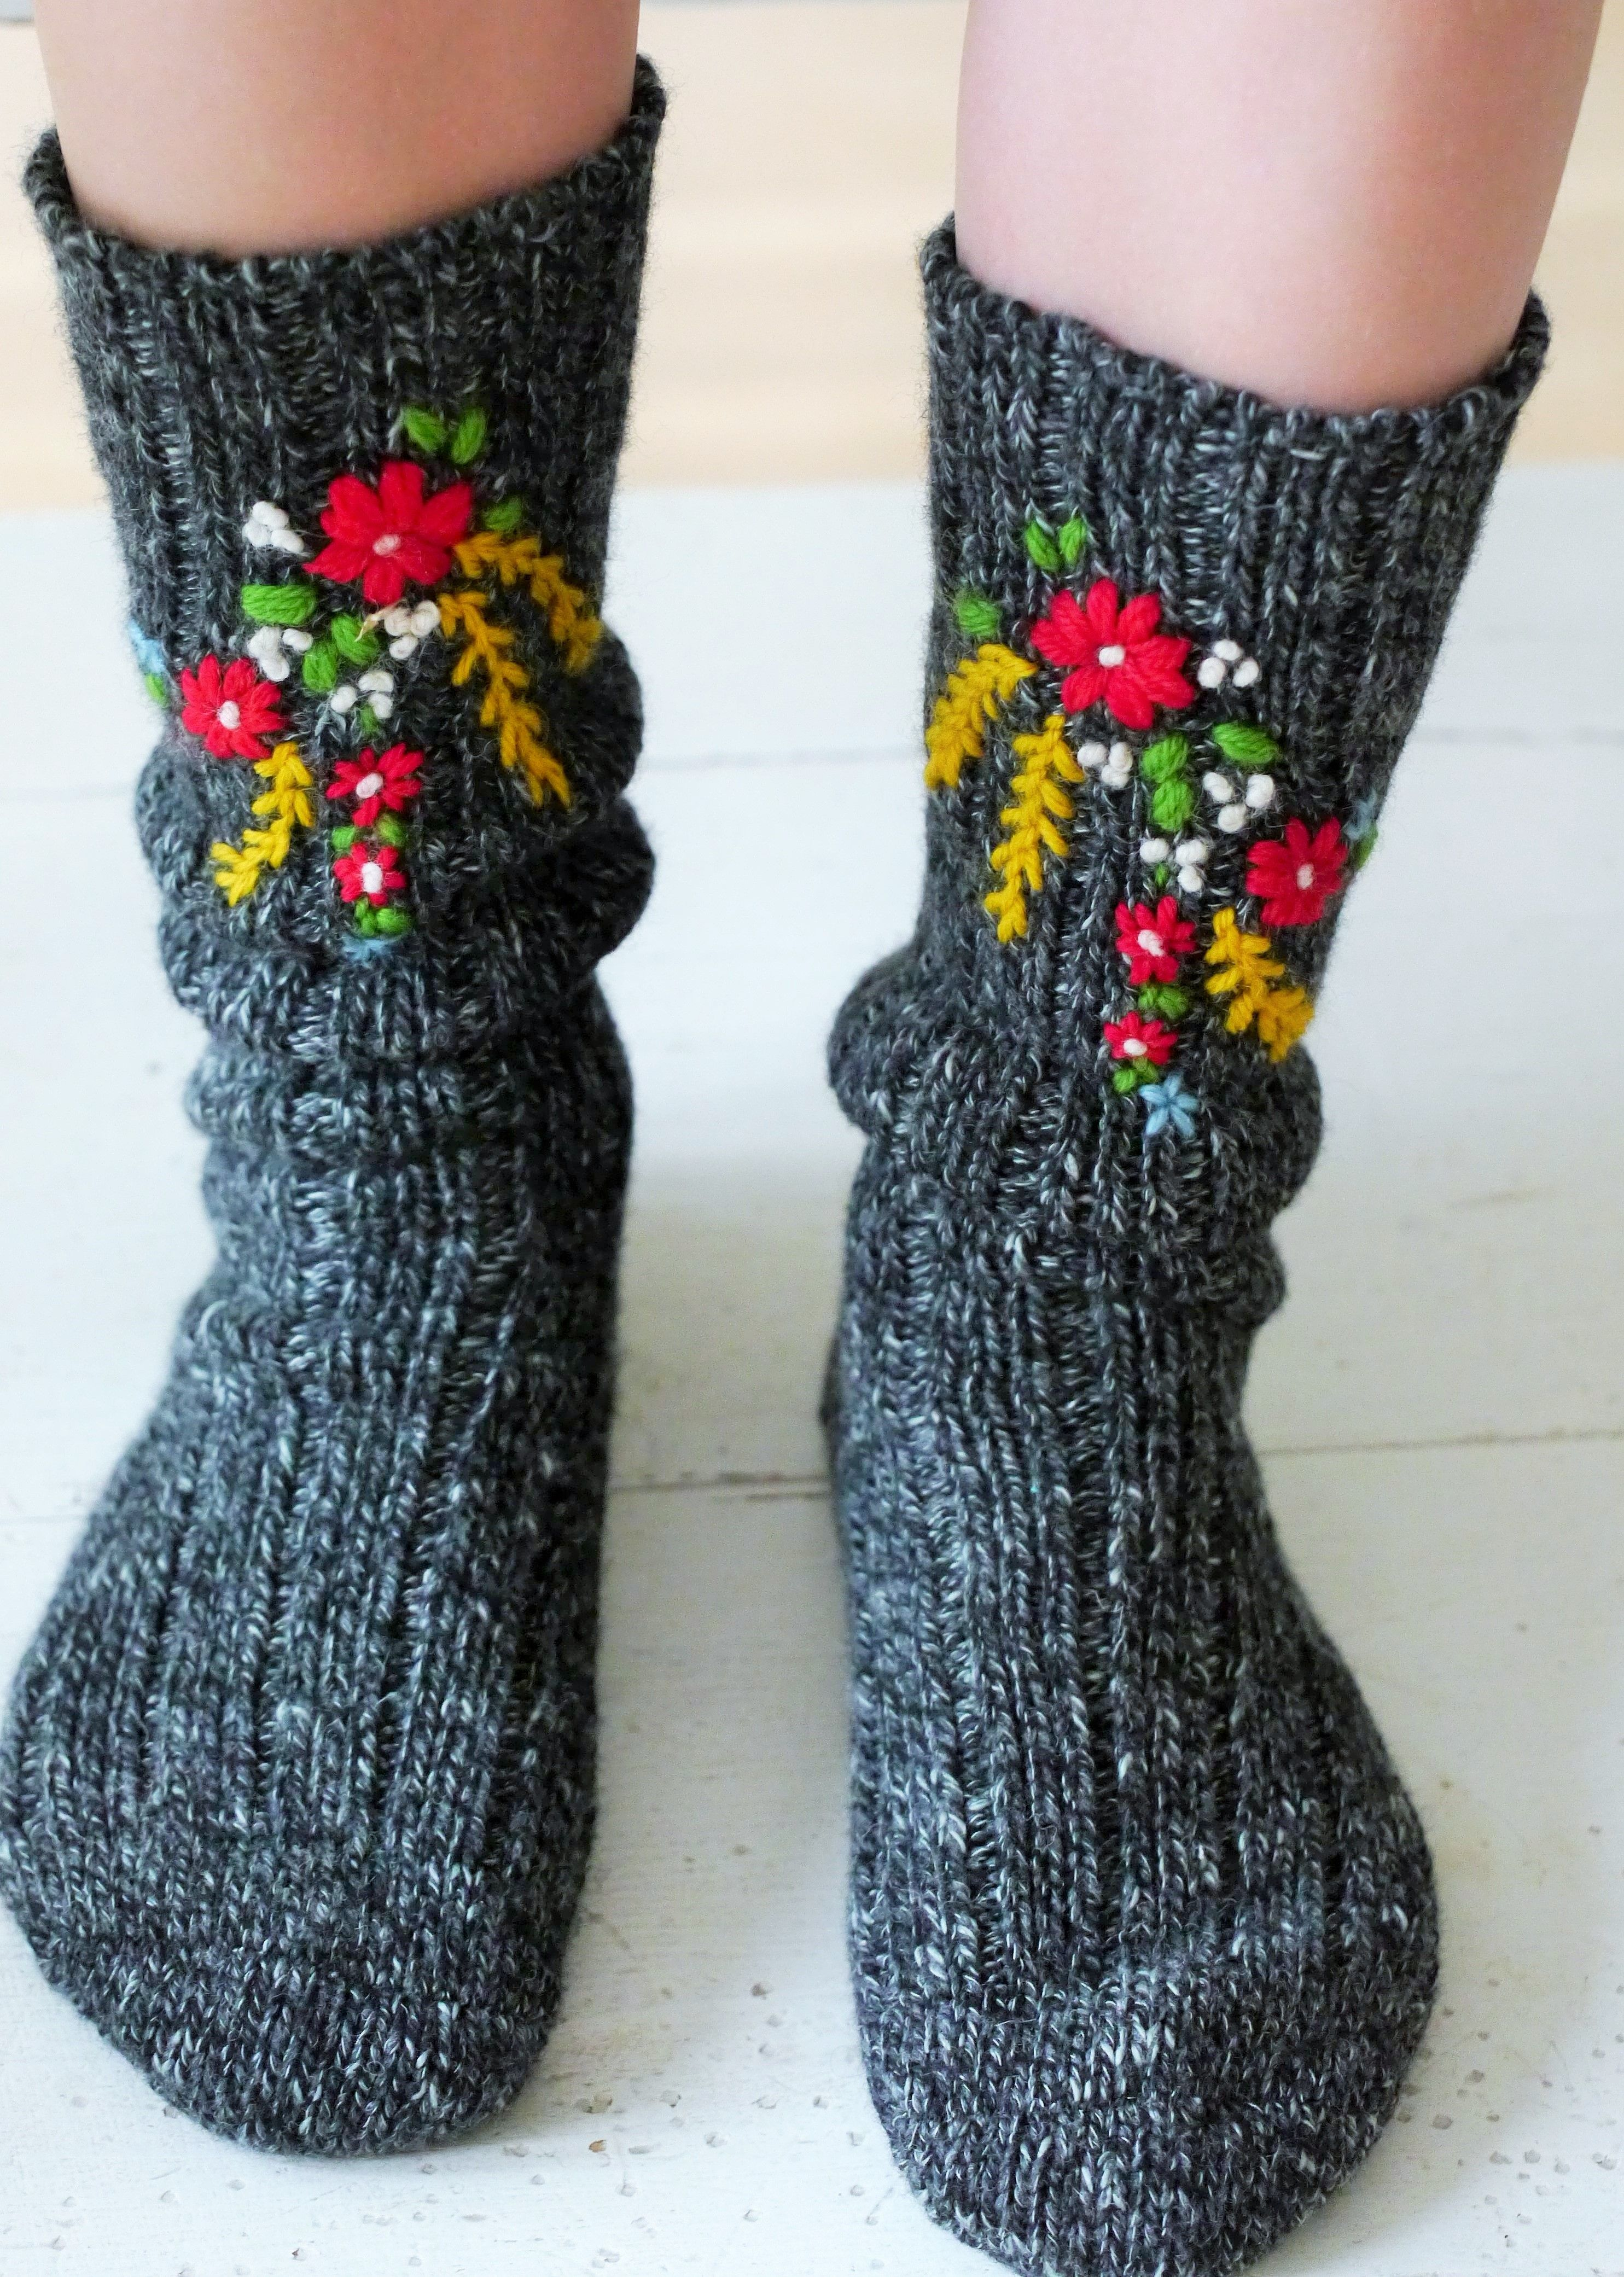 a301255a0b76d Hand embroidered socks - made by www.bonthuishouden.nl More